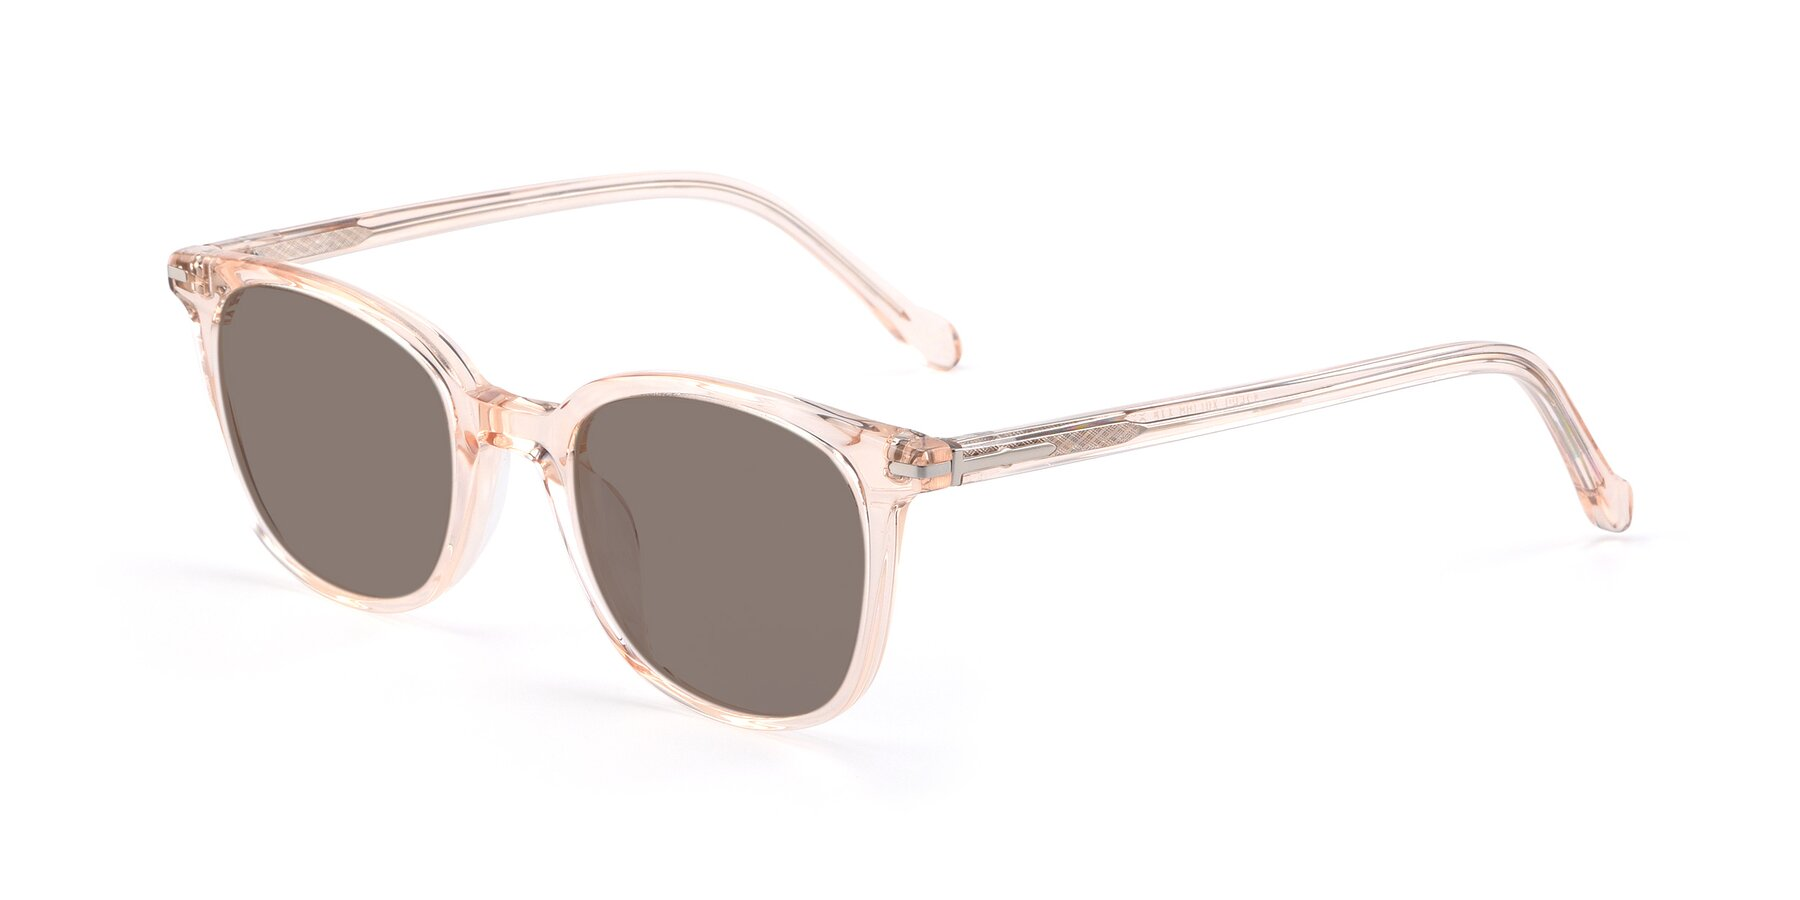 Angle of 17562 in Transparent Pink with Medium Brown Tinted Lenses